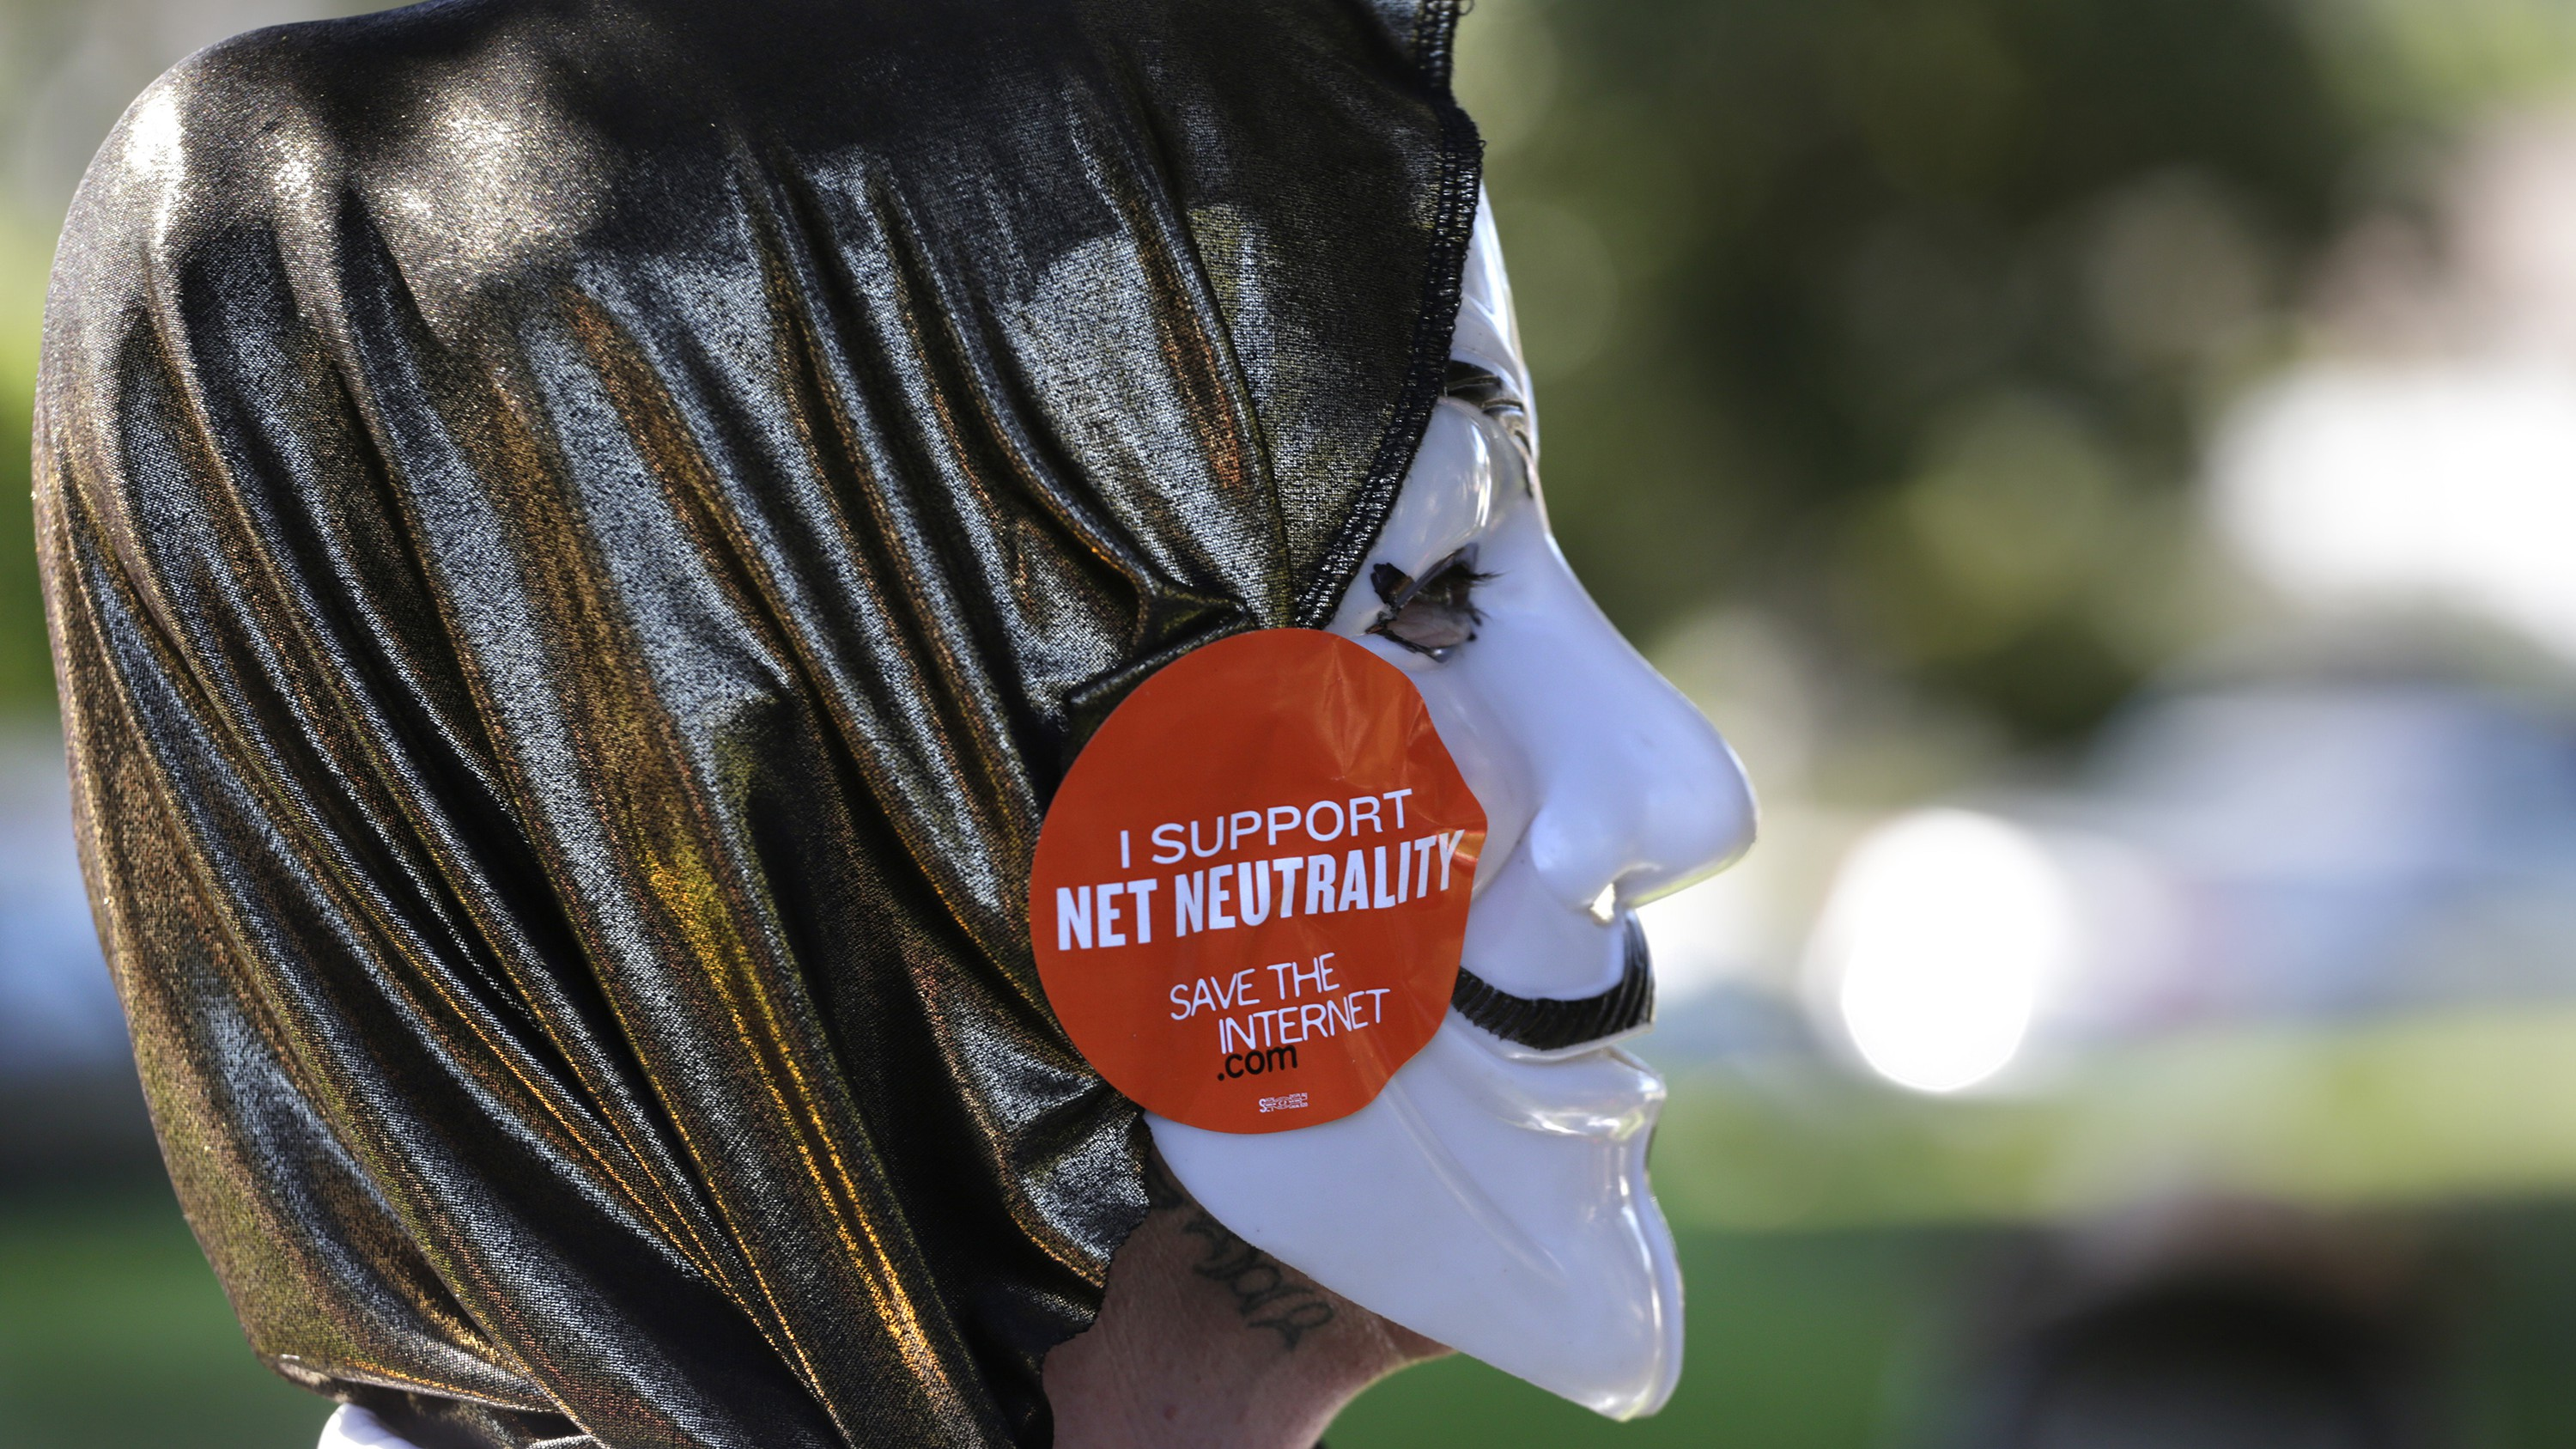 Net neutrality advocate in a Guy Fawkes mask